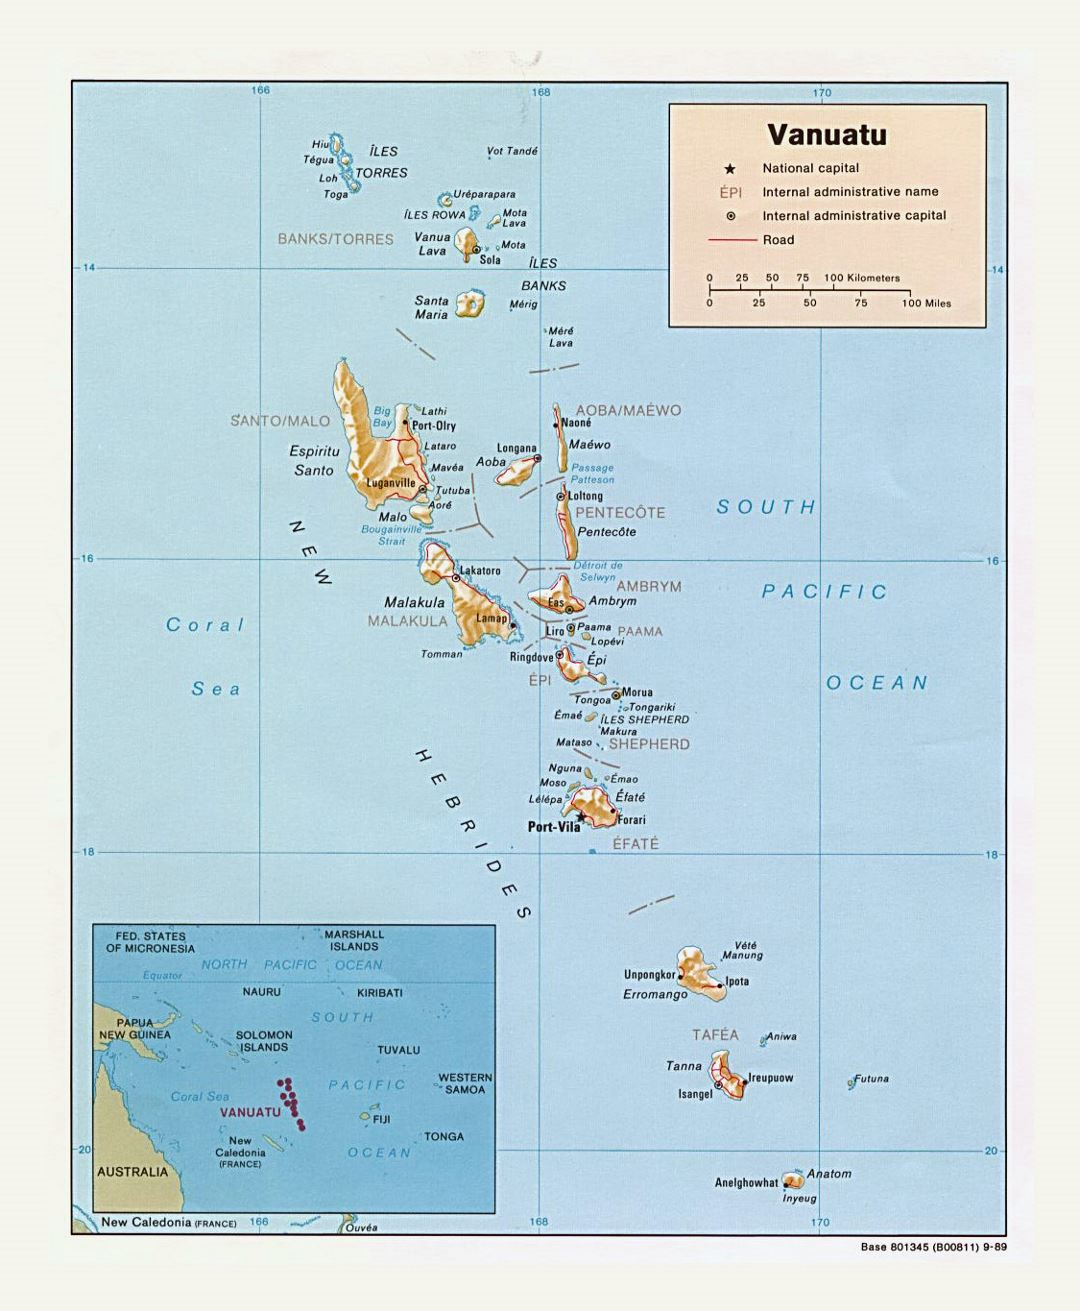 Detailed political and administrative map of Vanuatu with relief, roads and cities - 1989